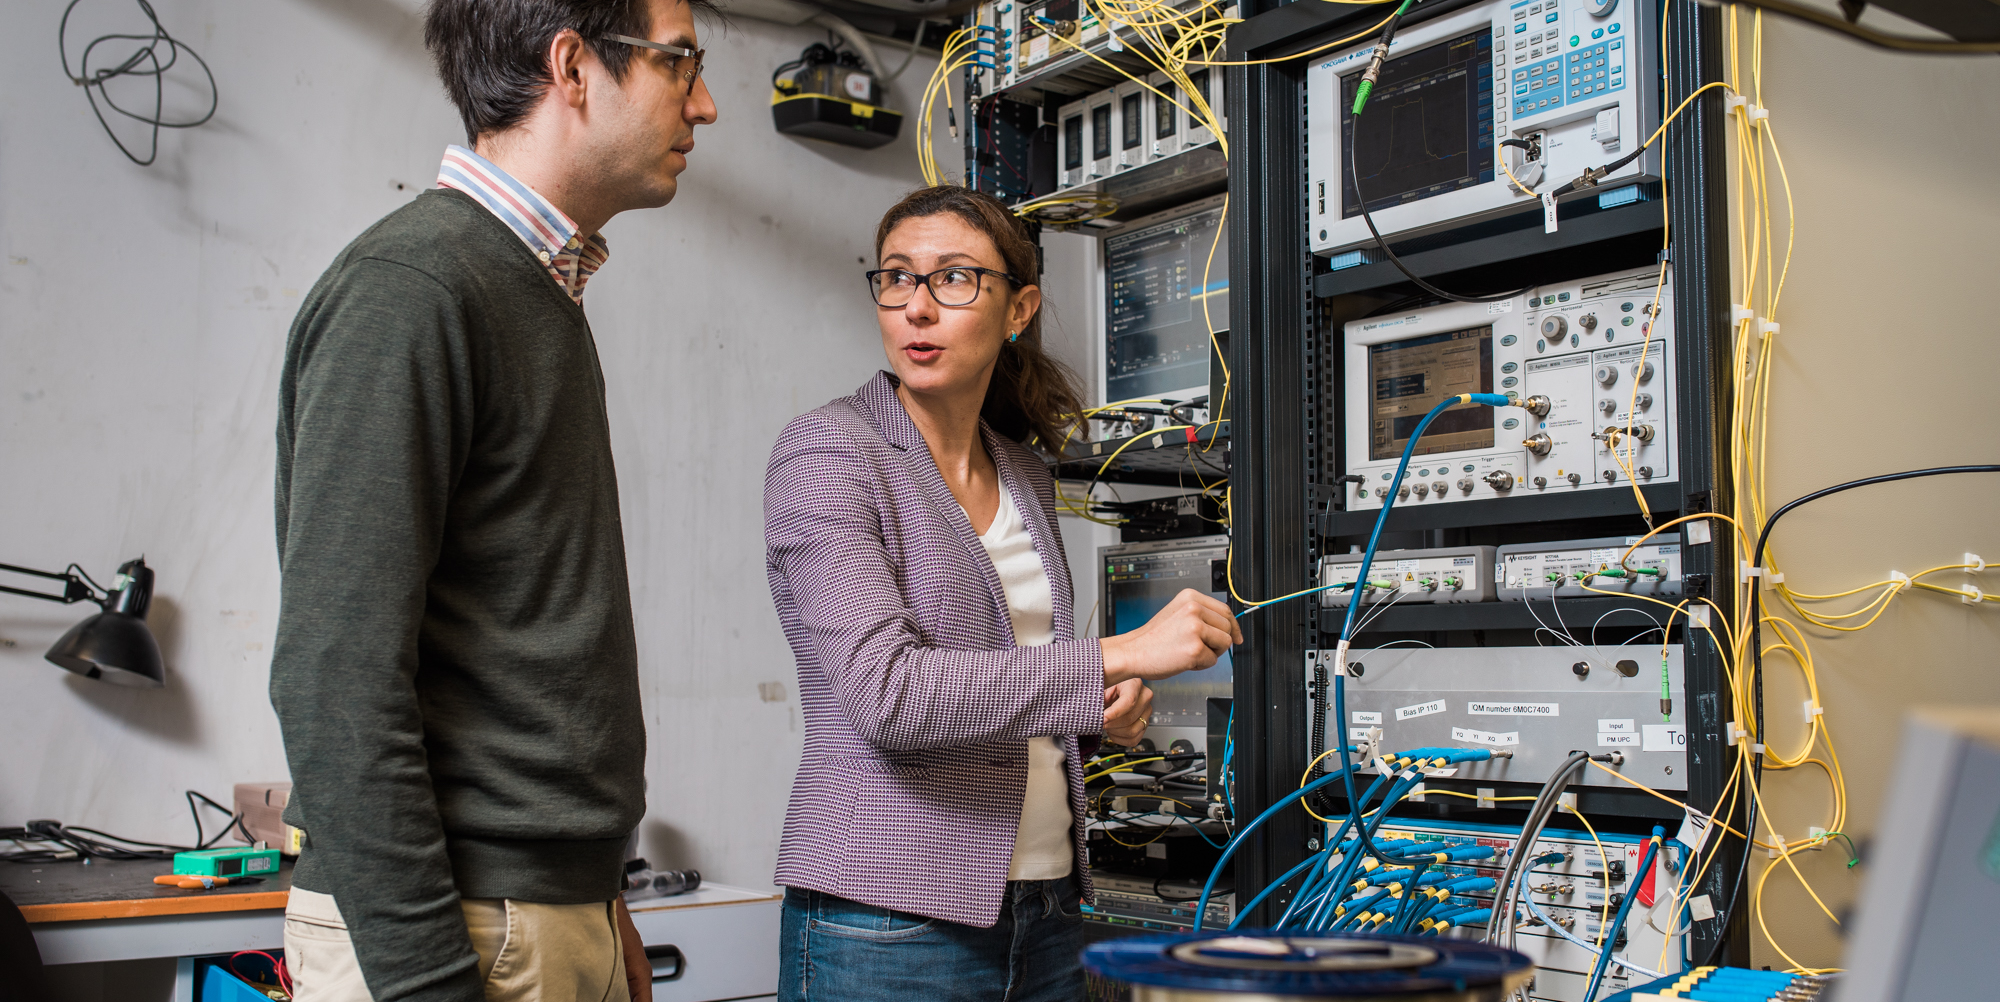 Two researchers in front of a rack of experimental equipment with optical fibres